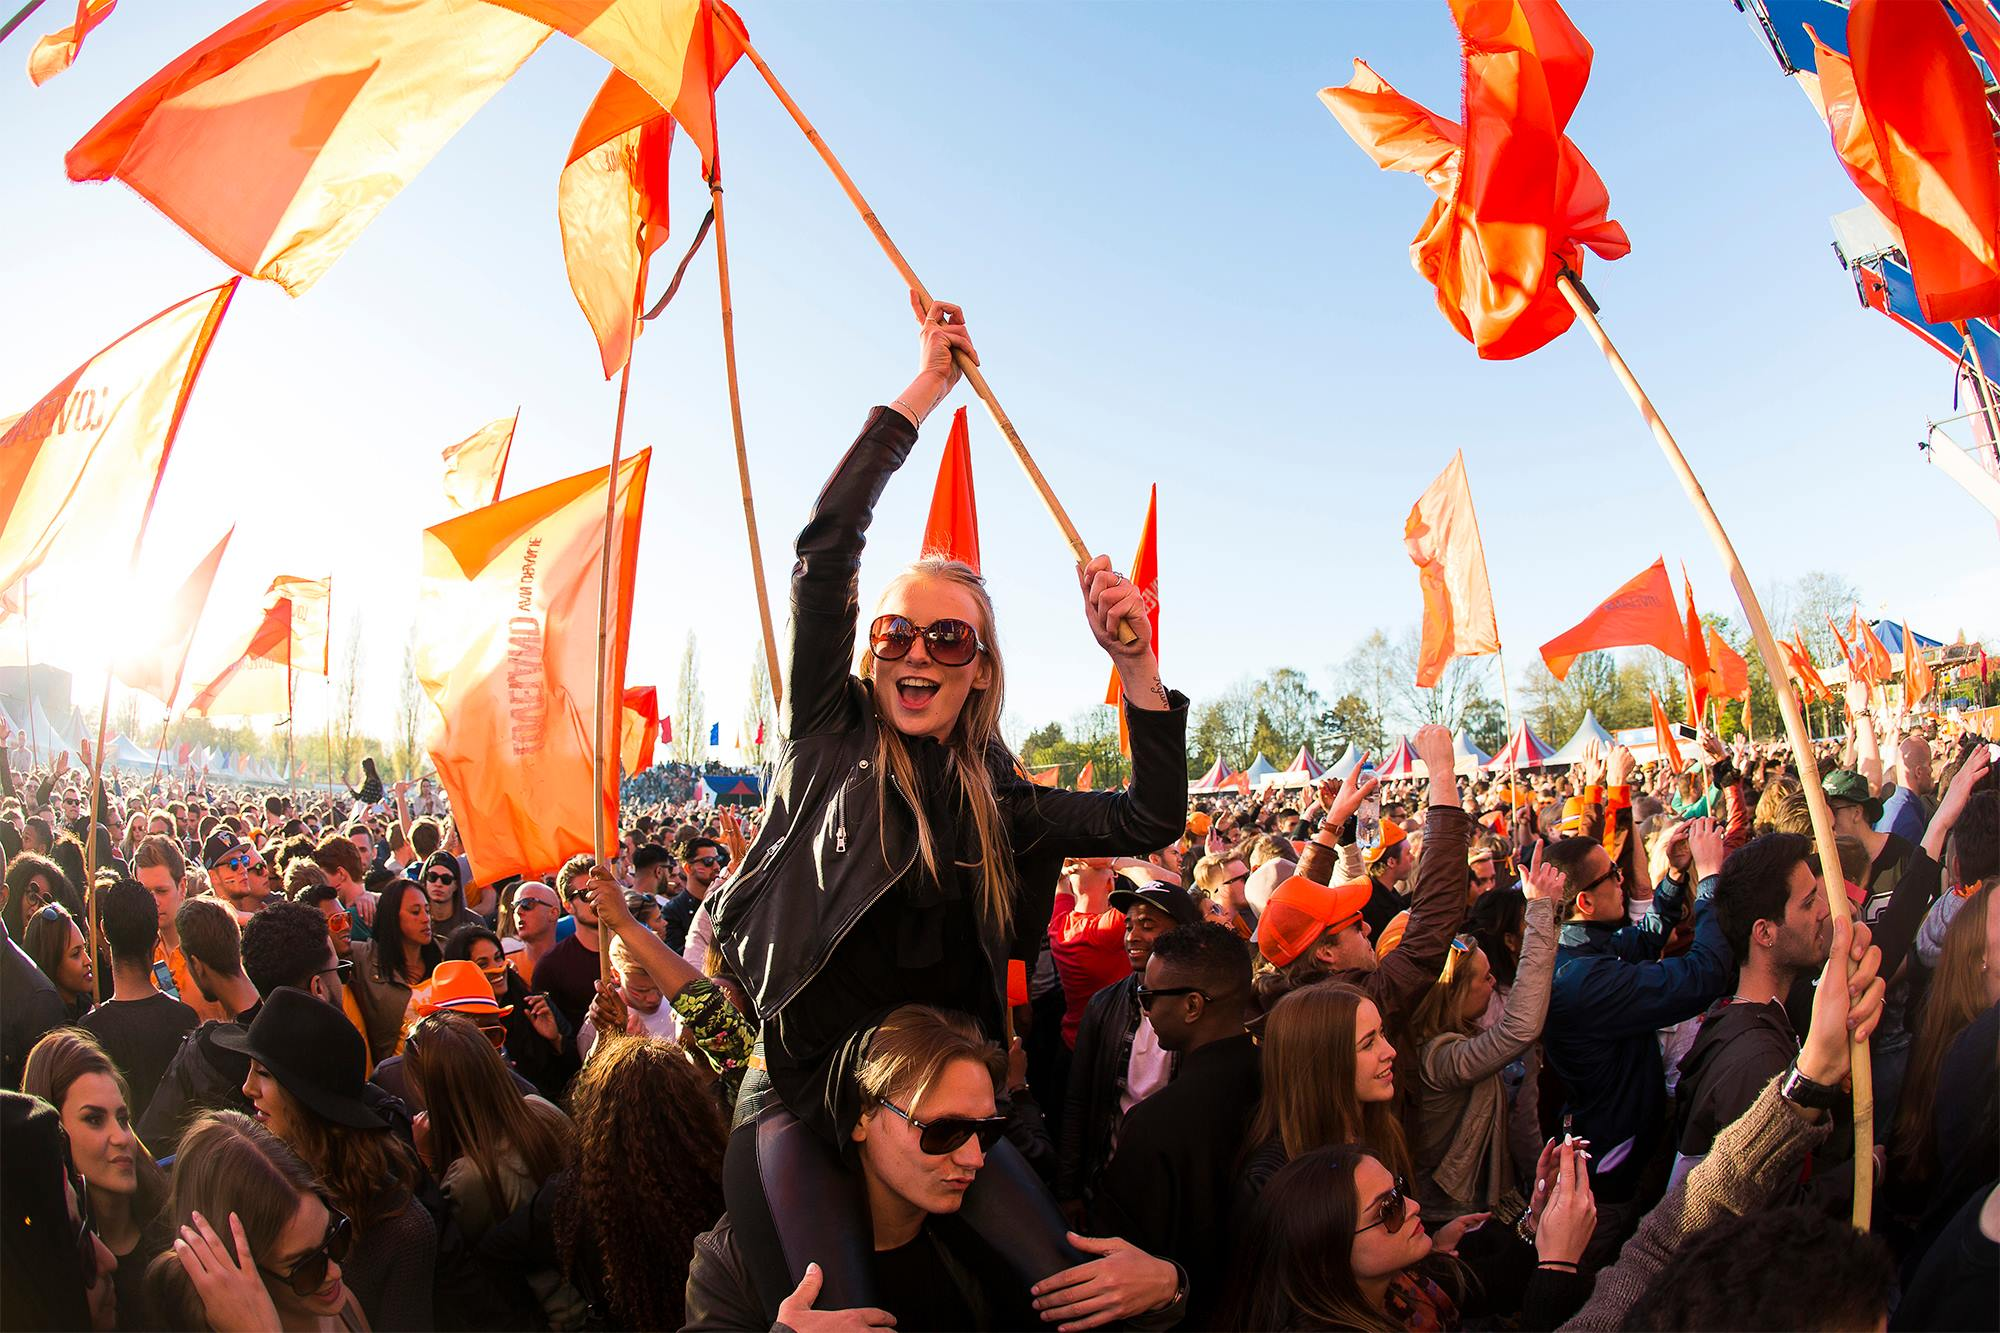 Kings day Celebrations in the netherlands